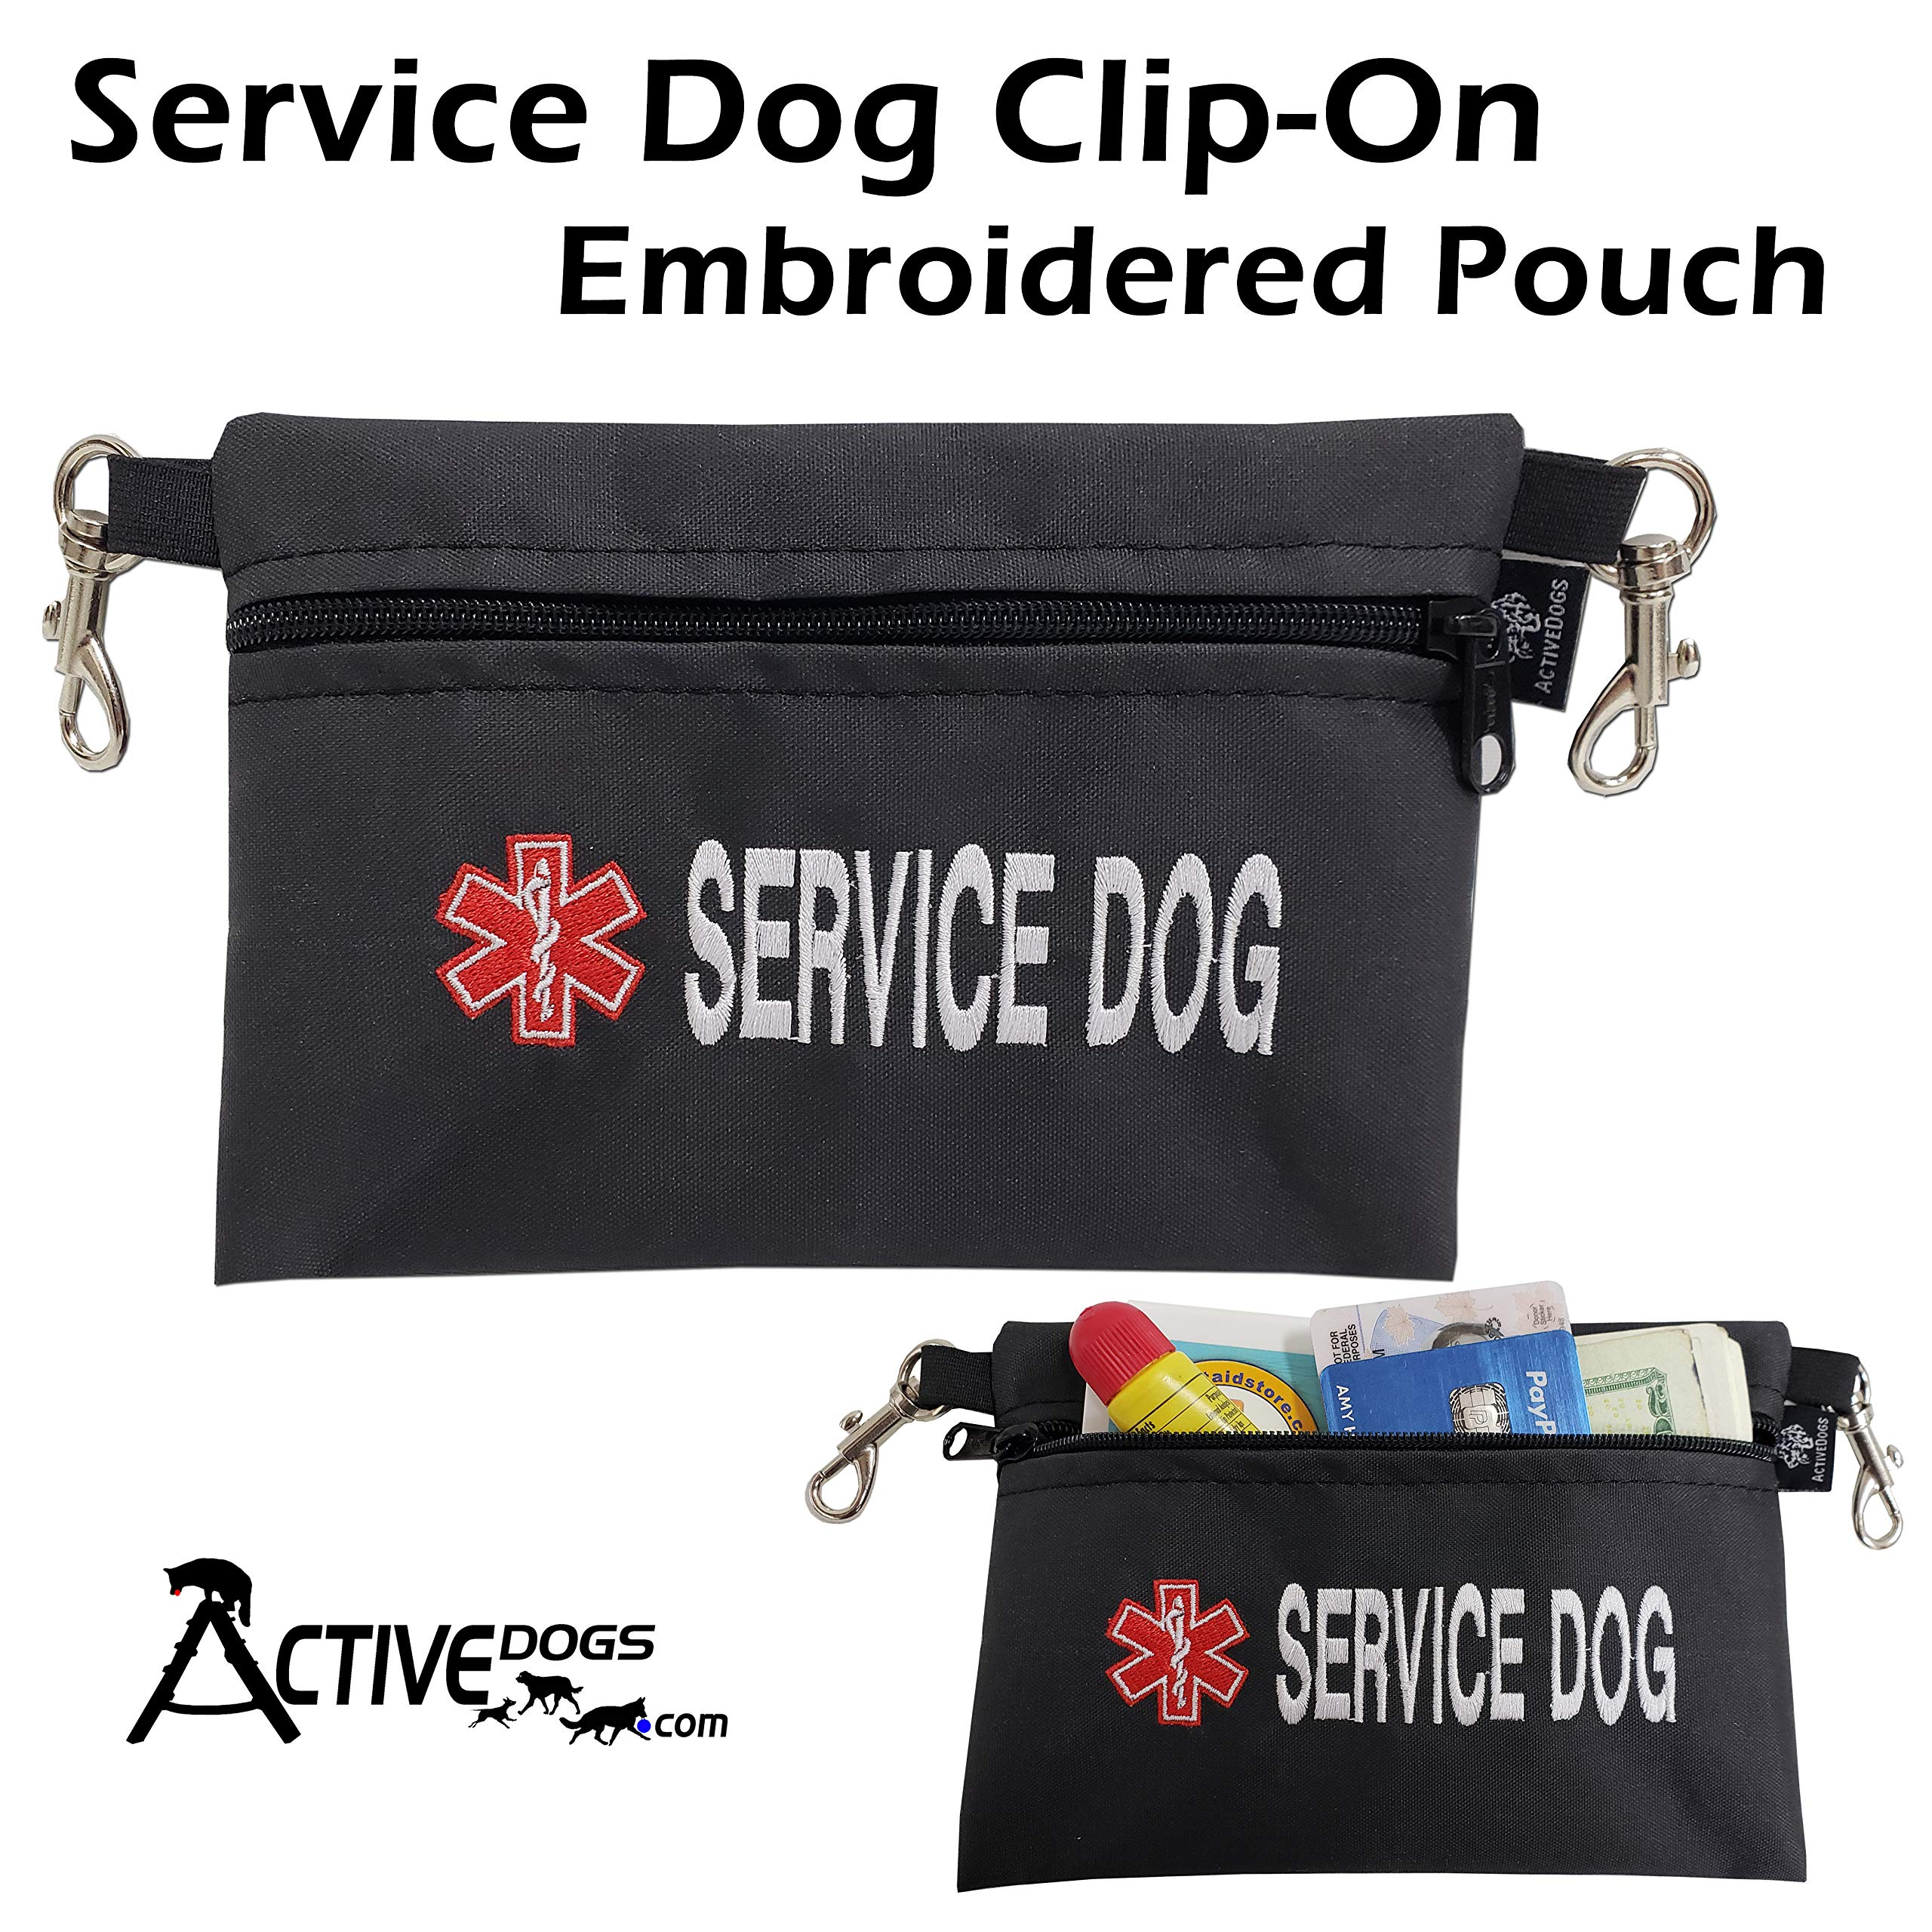 Activedogs Service Dog Clip-On Embroidered Pouch